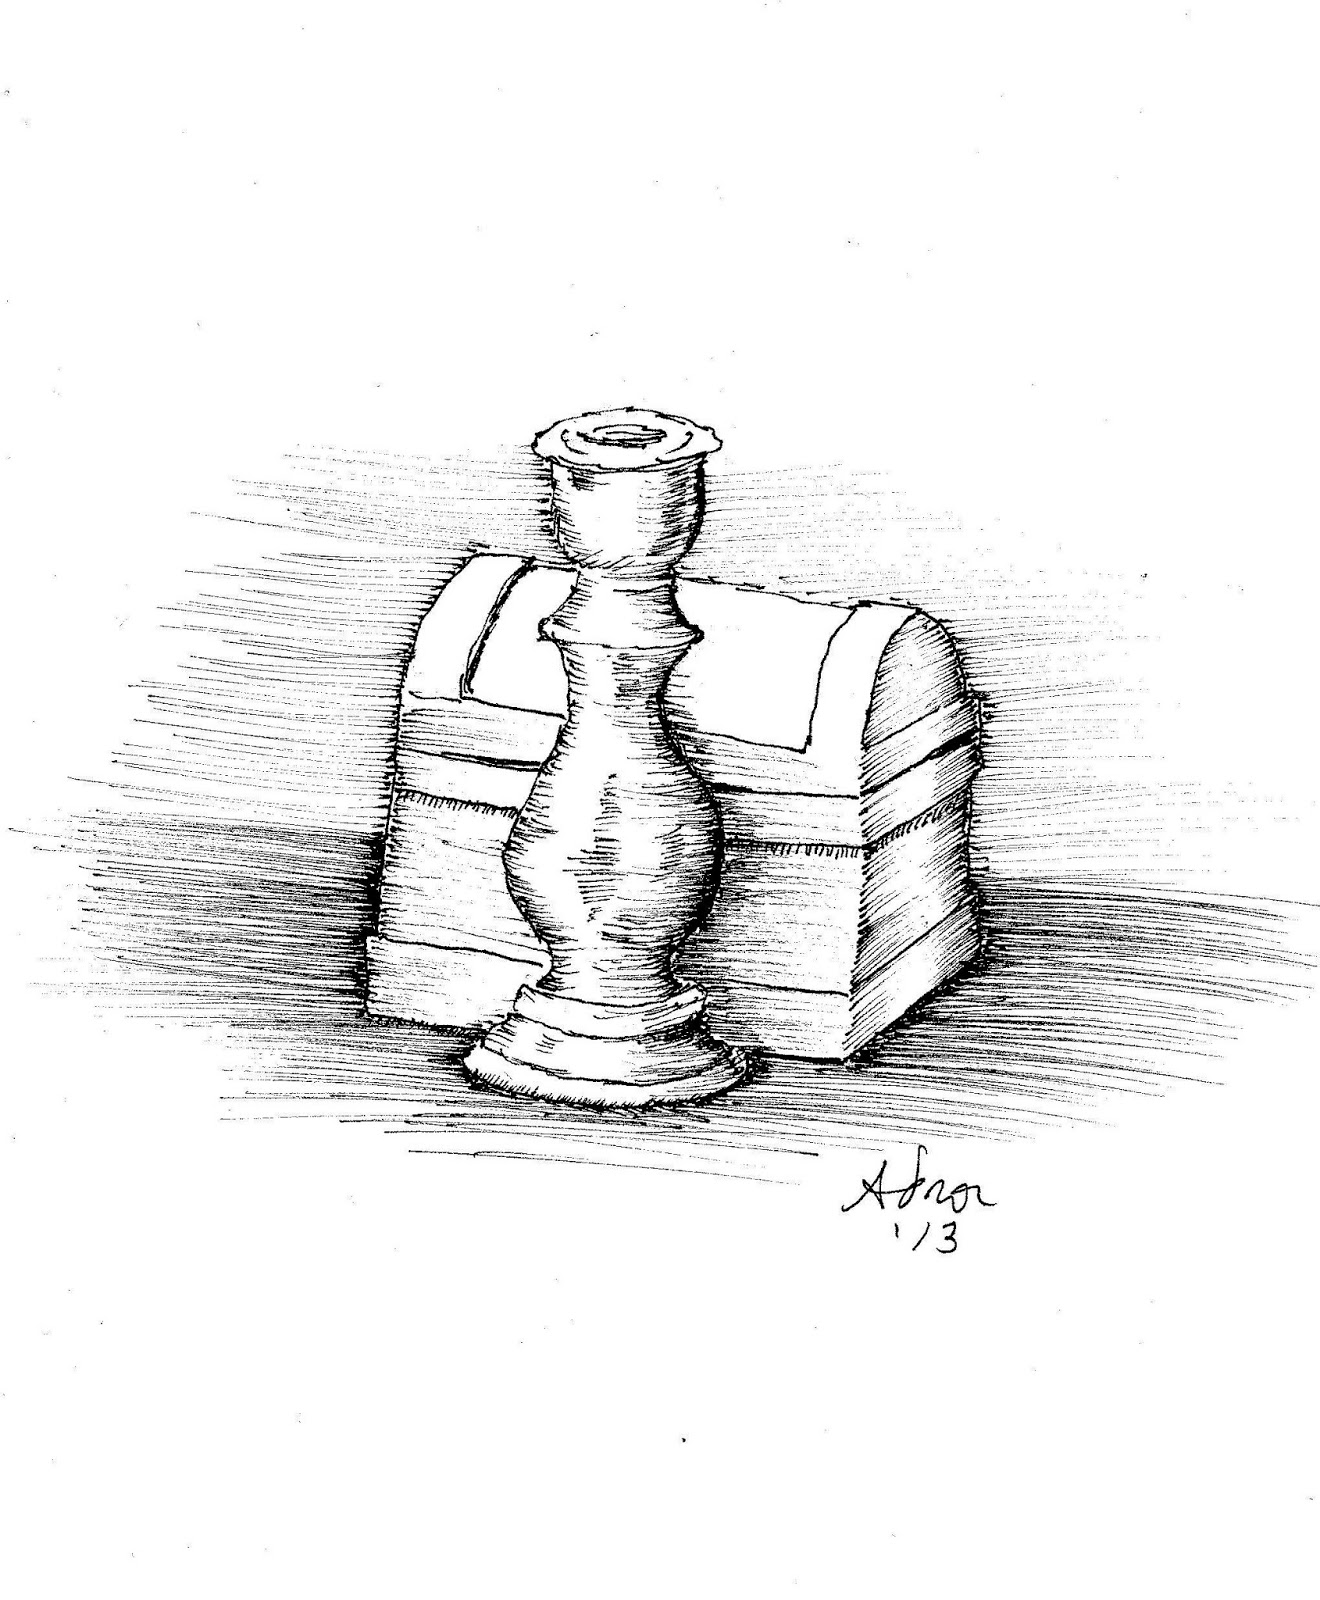 artist adron candlestick and box sketch in marker